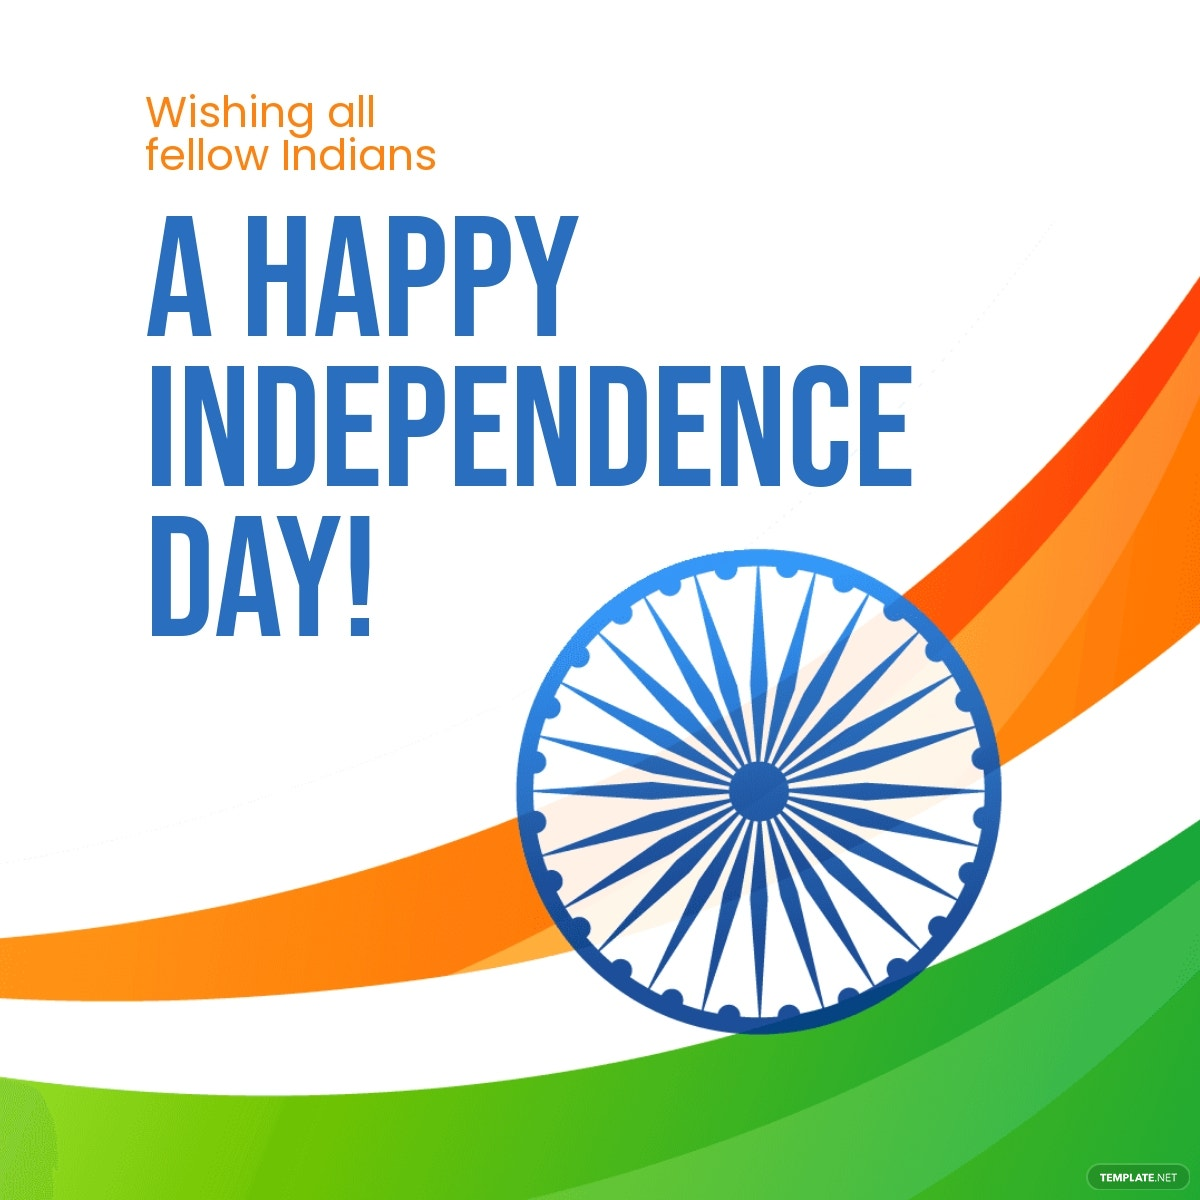 Happy Indian Independence Day Linkedin Post Template.jpe